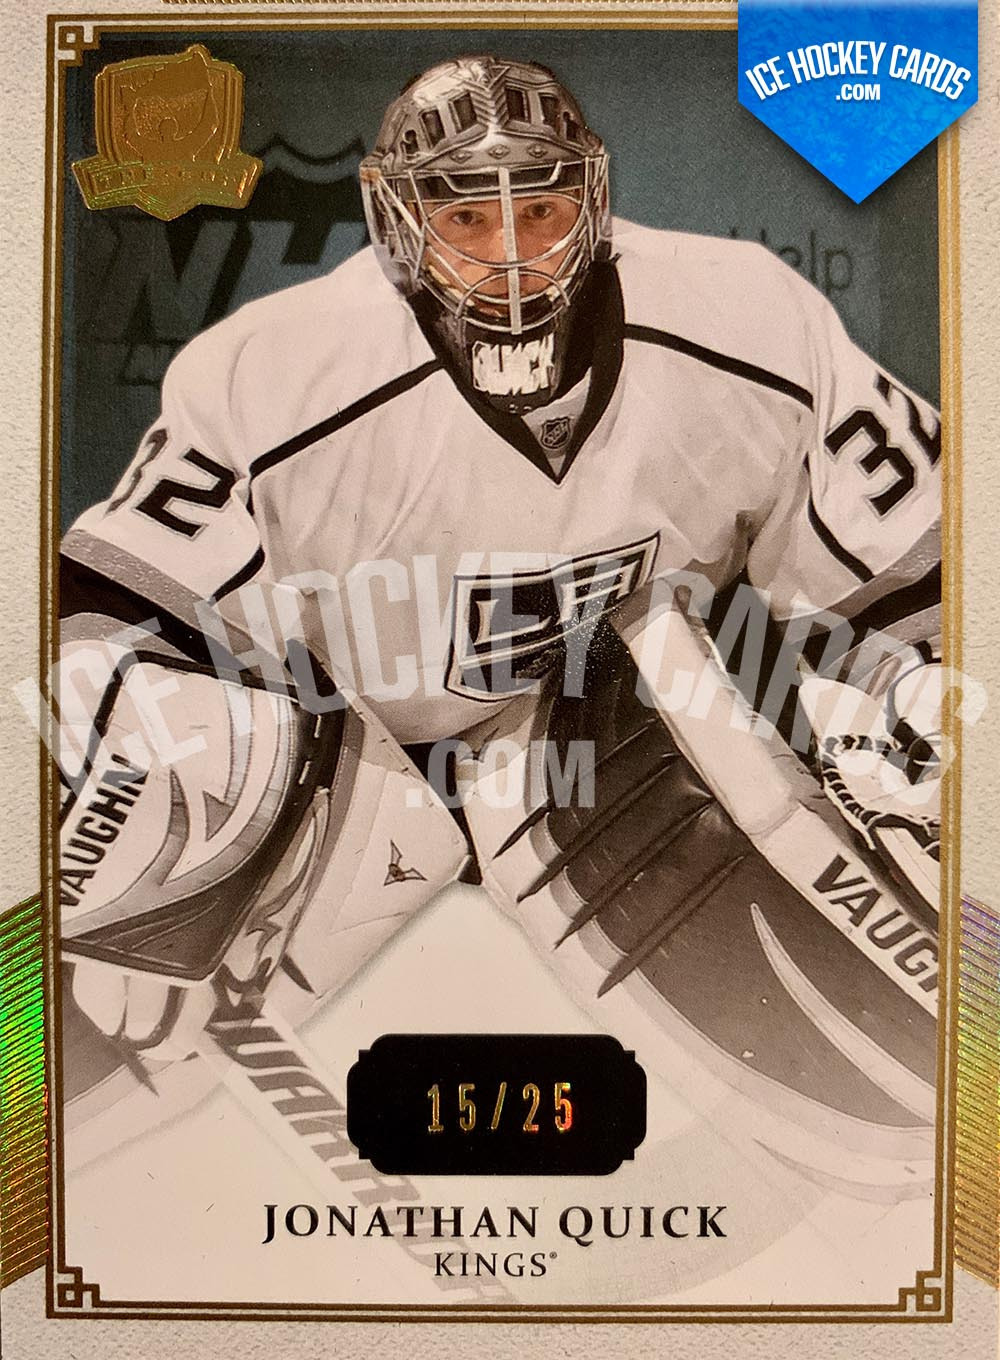 Upper Deck - The Cup 2013-14 - Jonathan Quick Gold Base Card # to 25 RARE